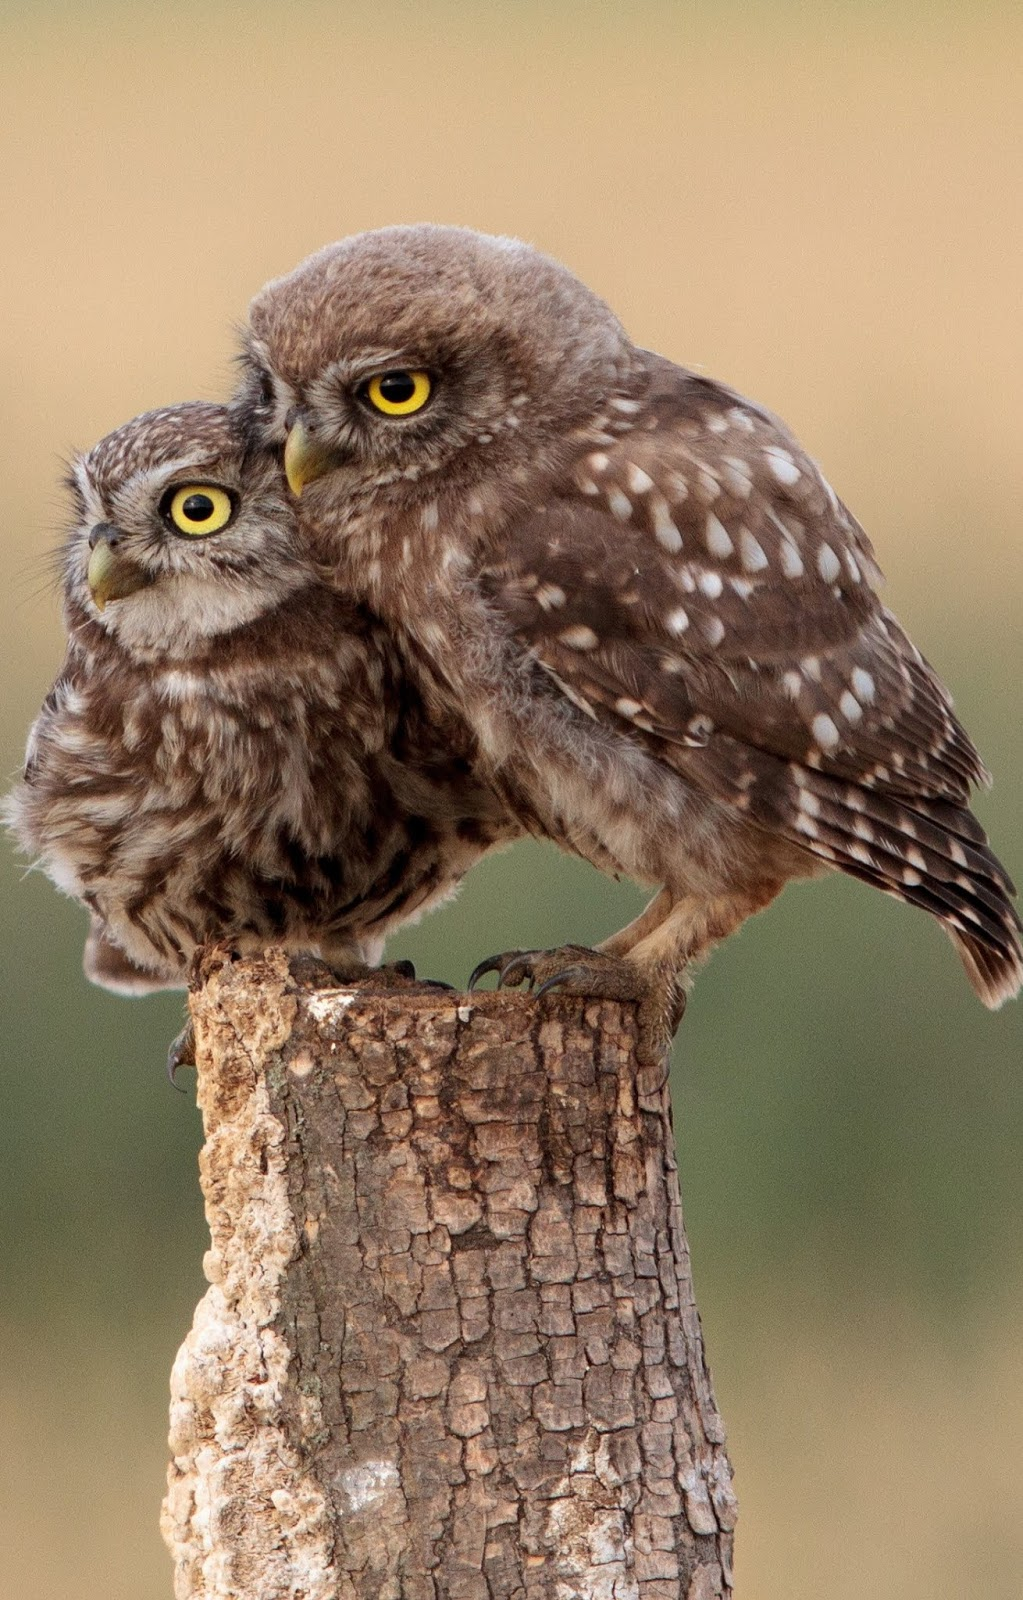 Pair of cute owls.